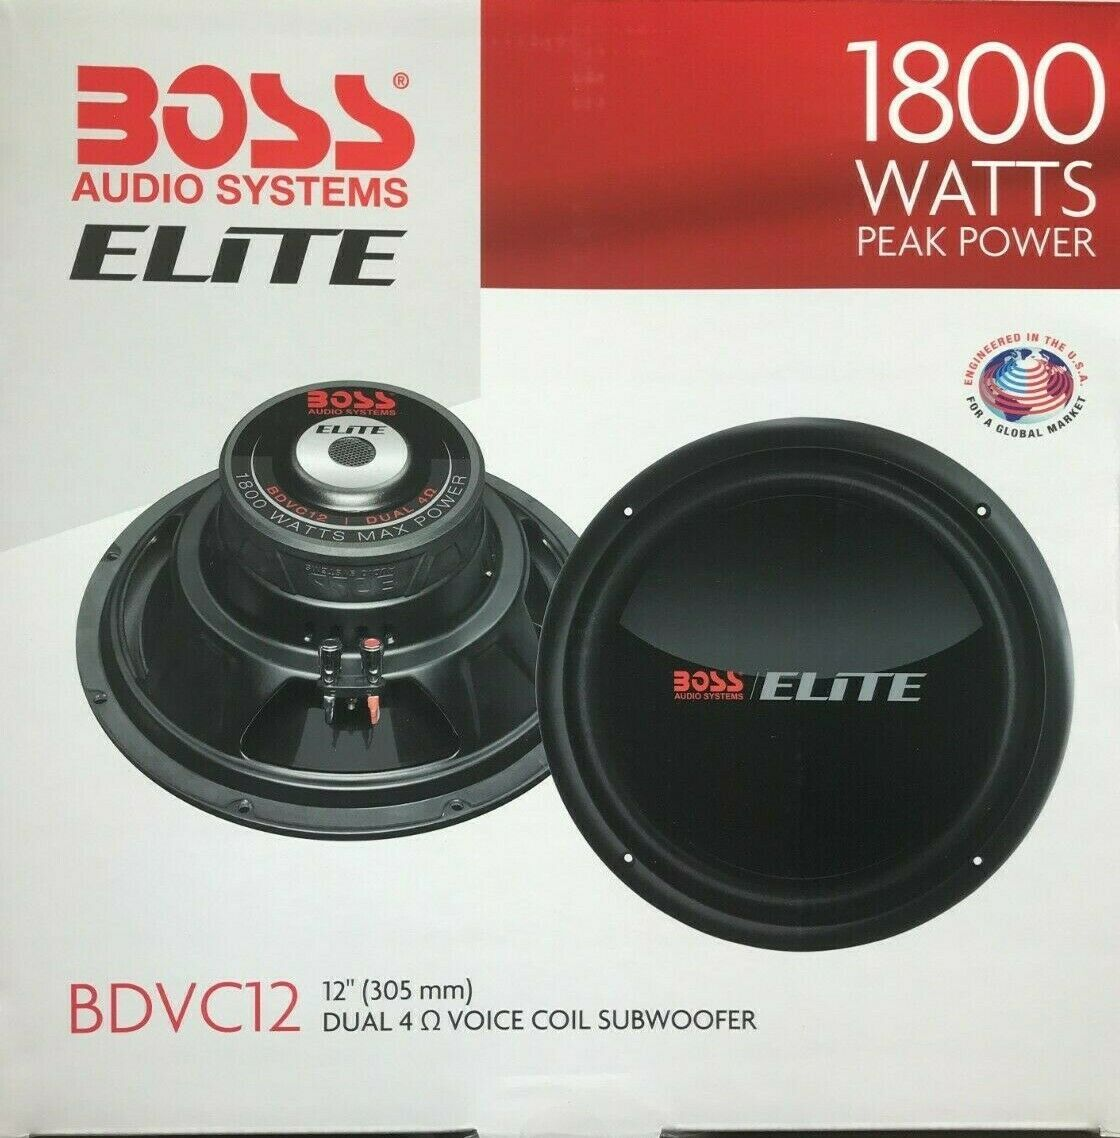 Primary image for BOSS Elite - BDVC12 - 12' Subwoofer - 1800 W - Dual Voice Coil - 4 Ohm - SINGLE